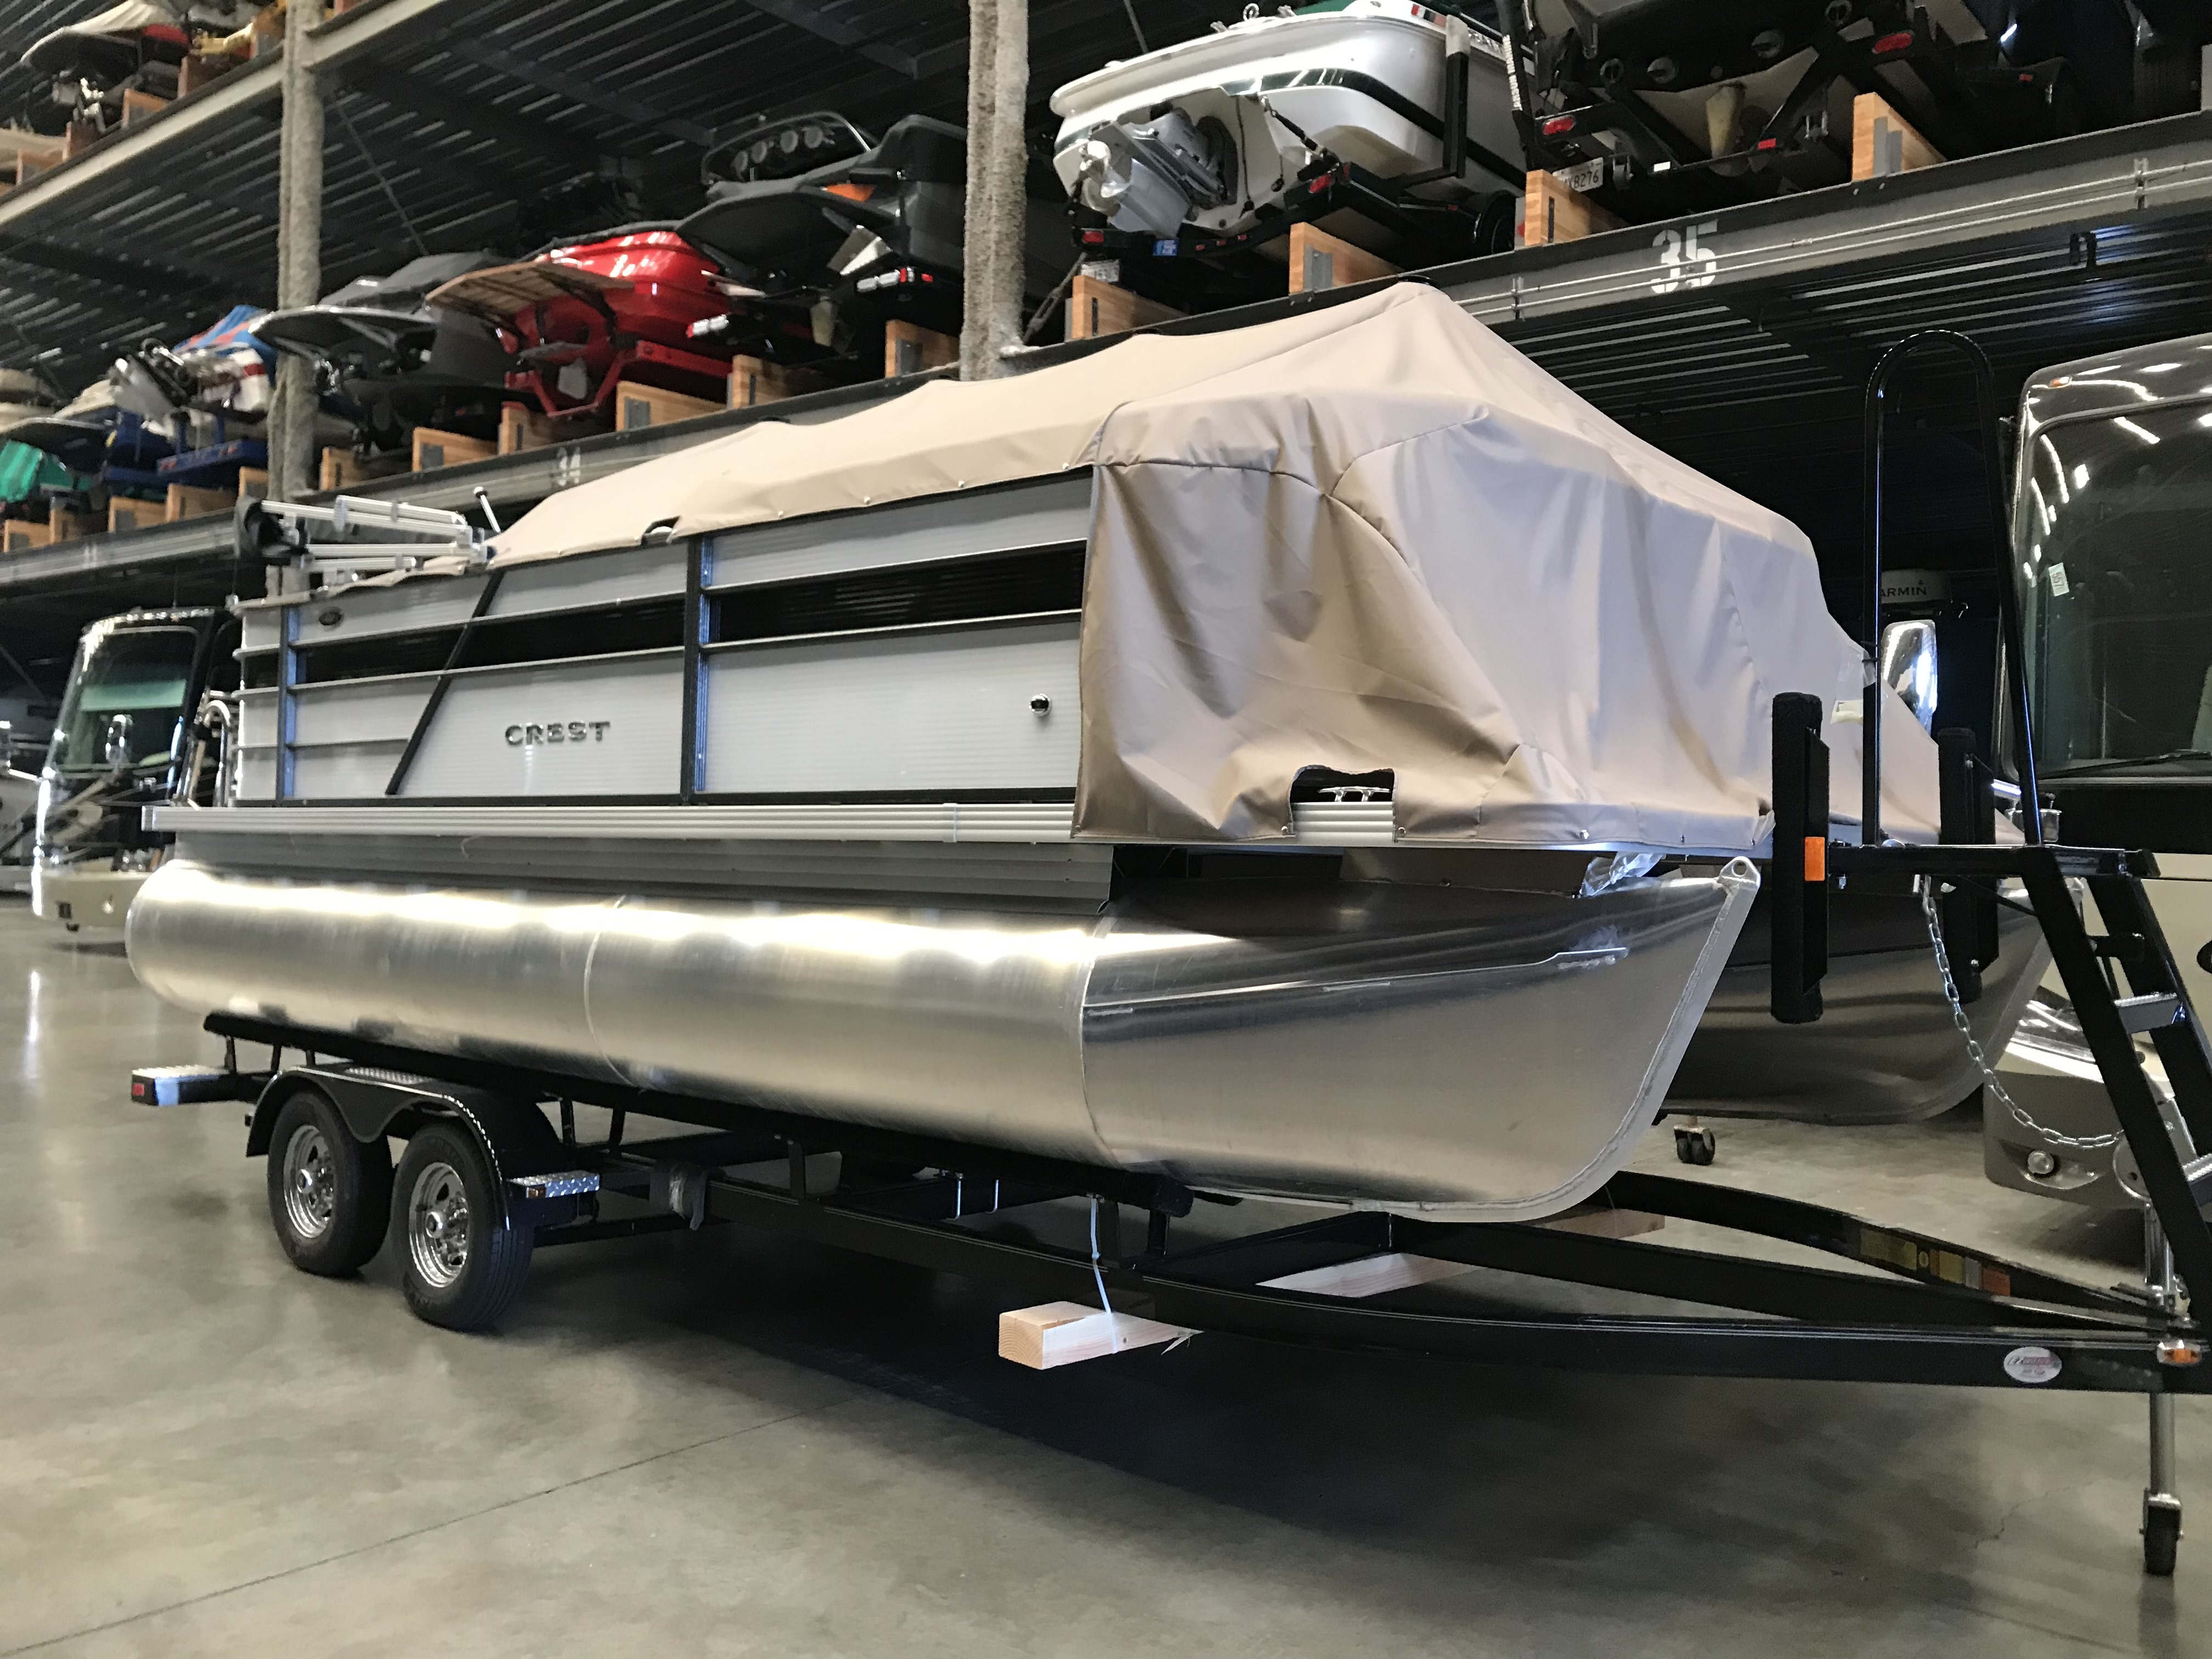 2019 Crest boat for sale, model of the boat is CREST I 200 L & Image # 1 of 480